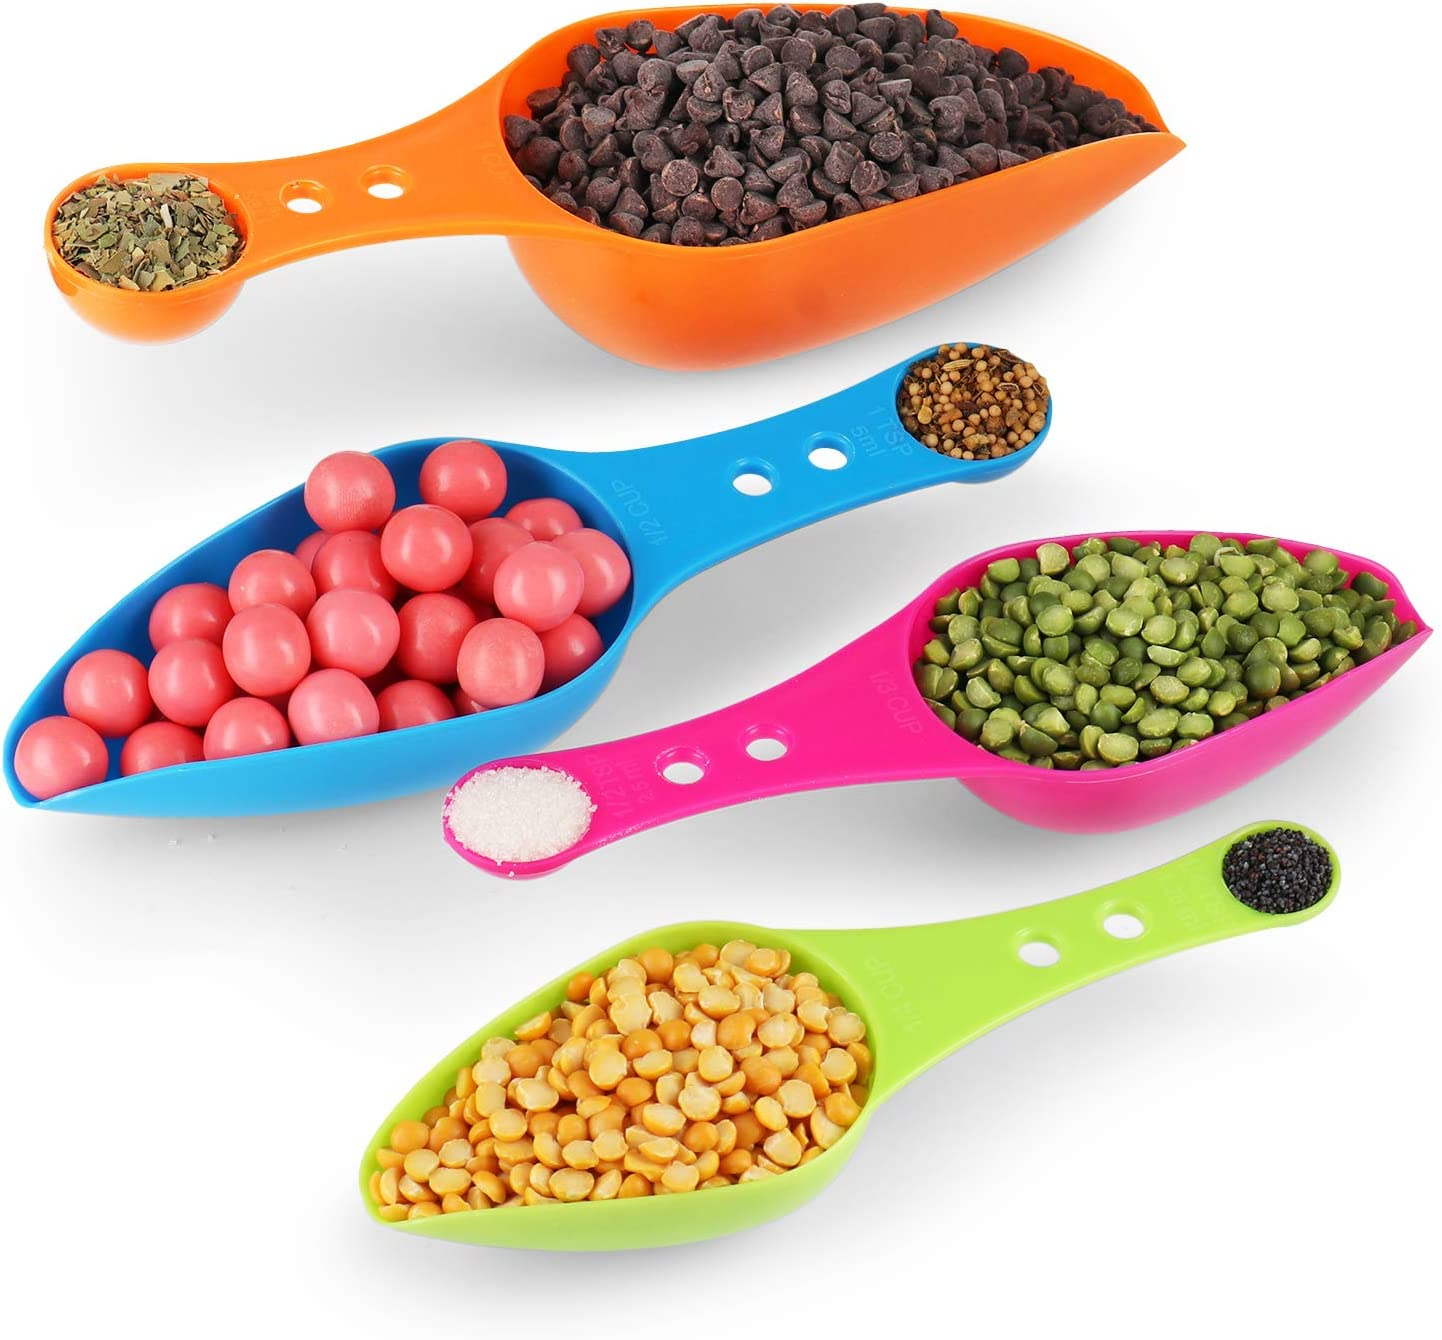 Pack of 4 – 2 in 1 Scoop & Measuring Spoons Set – Plastic Scoops for Canisters with Measuring Spoon – Colorful Food Scoop & Measuring Spoons Set – Great for Measuring Dry and Liquid Ingredients